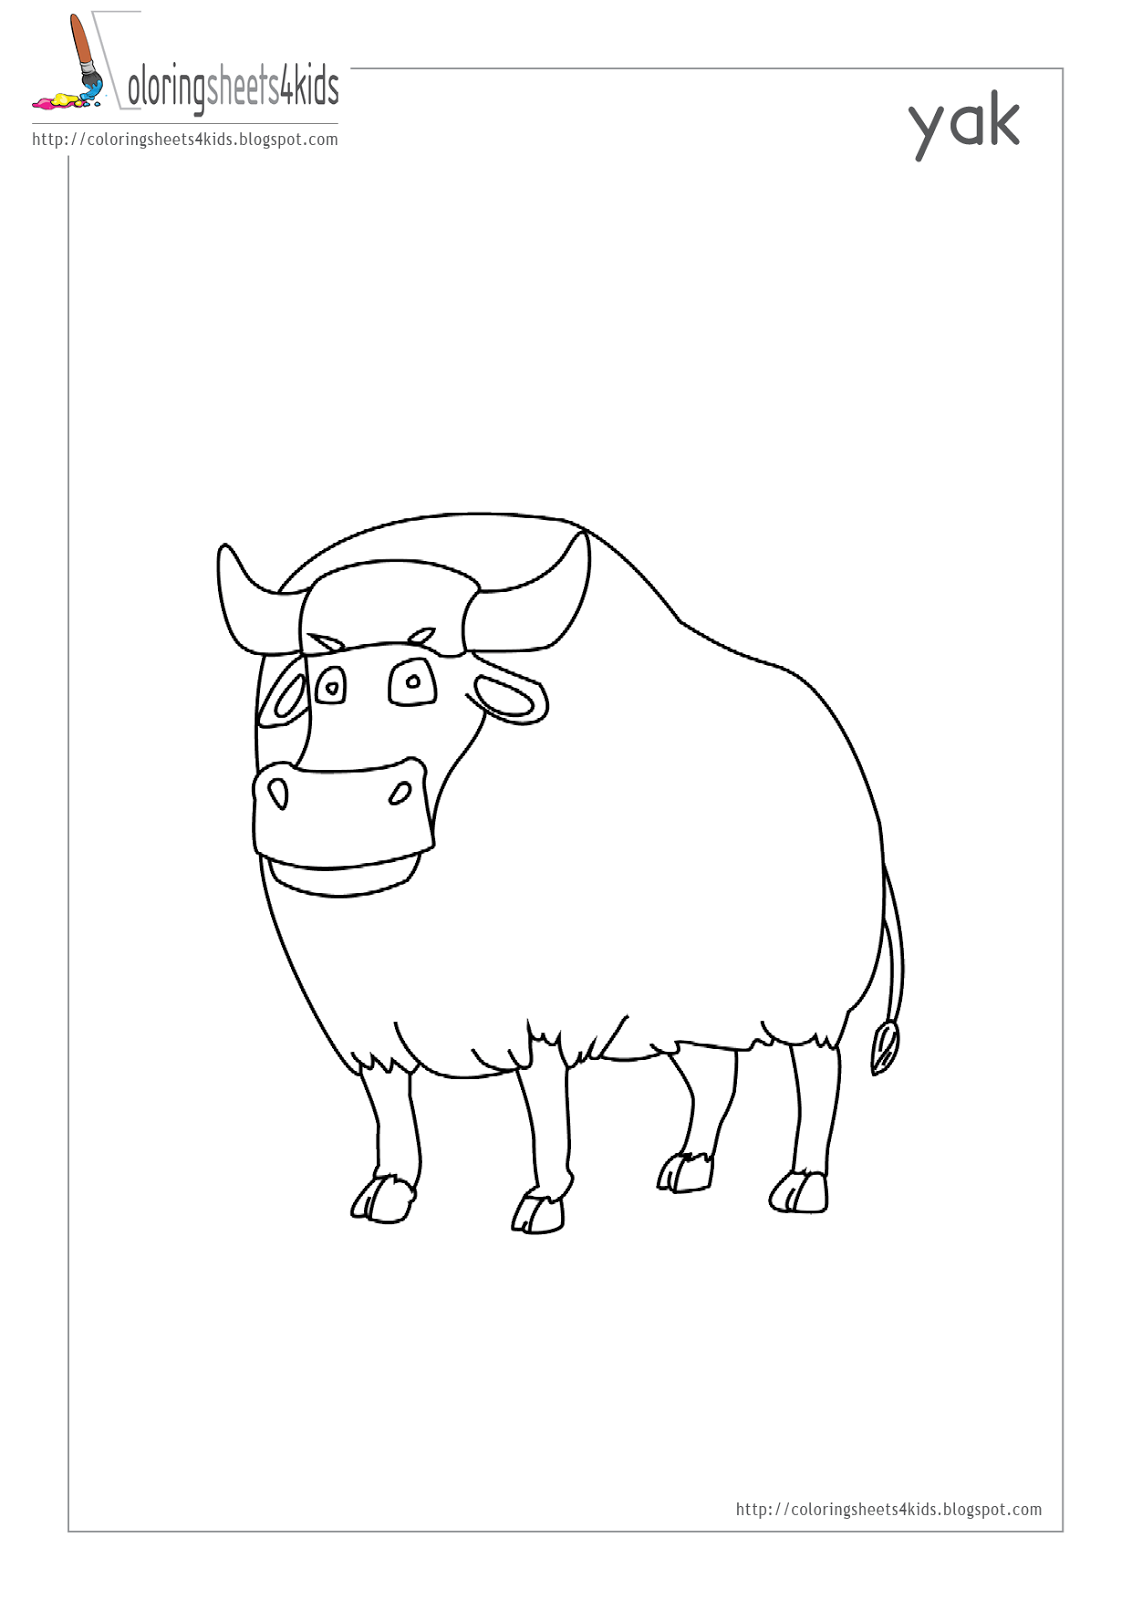 Coloring pages for kids yak coloring page